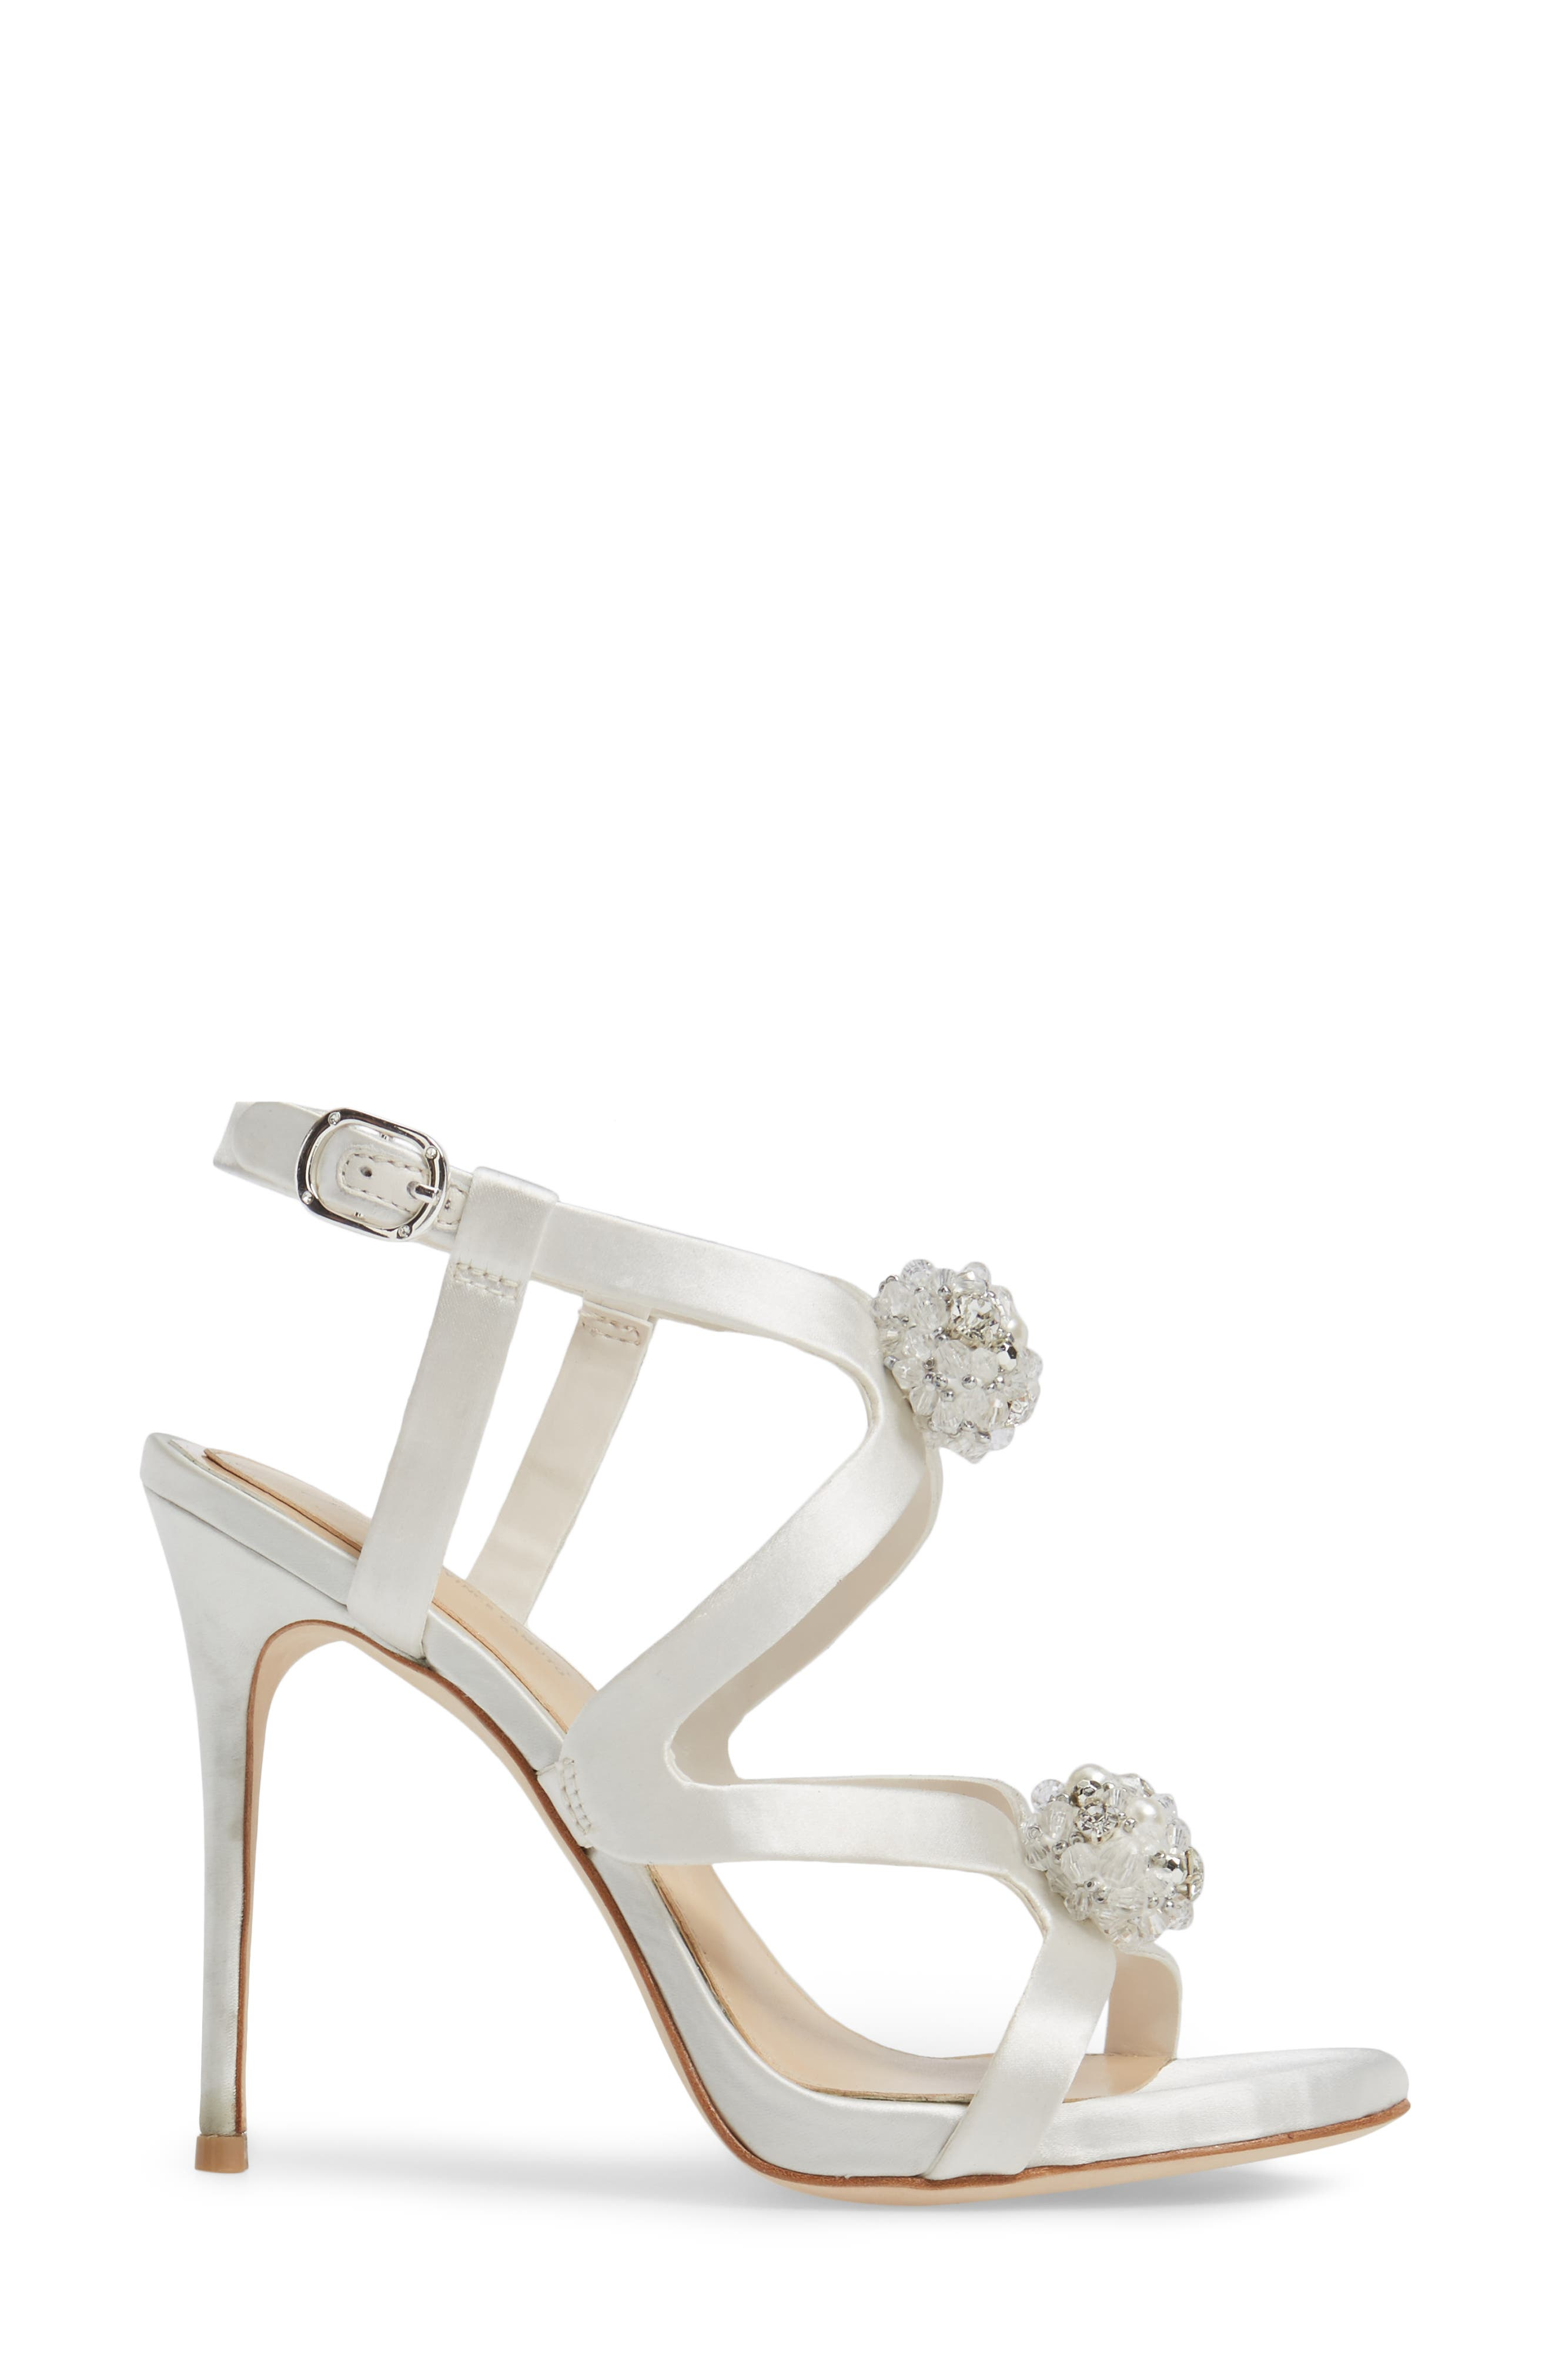 Daija Sandal,                             Alternate thumbnail 3, color,                             Ivory Satin